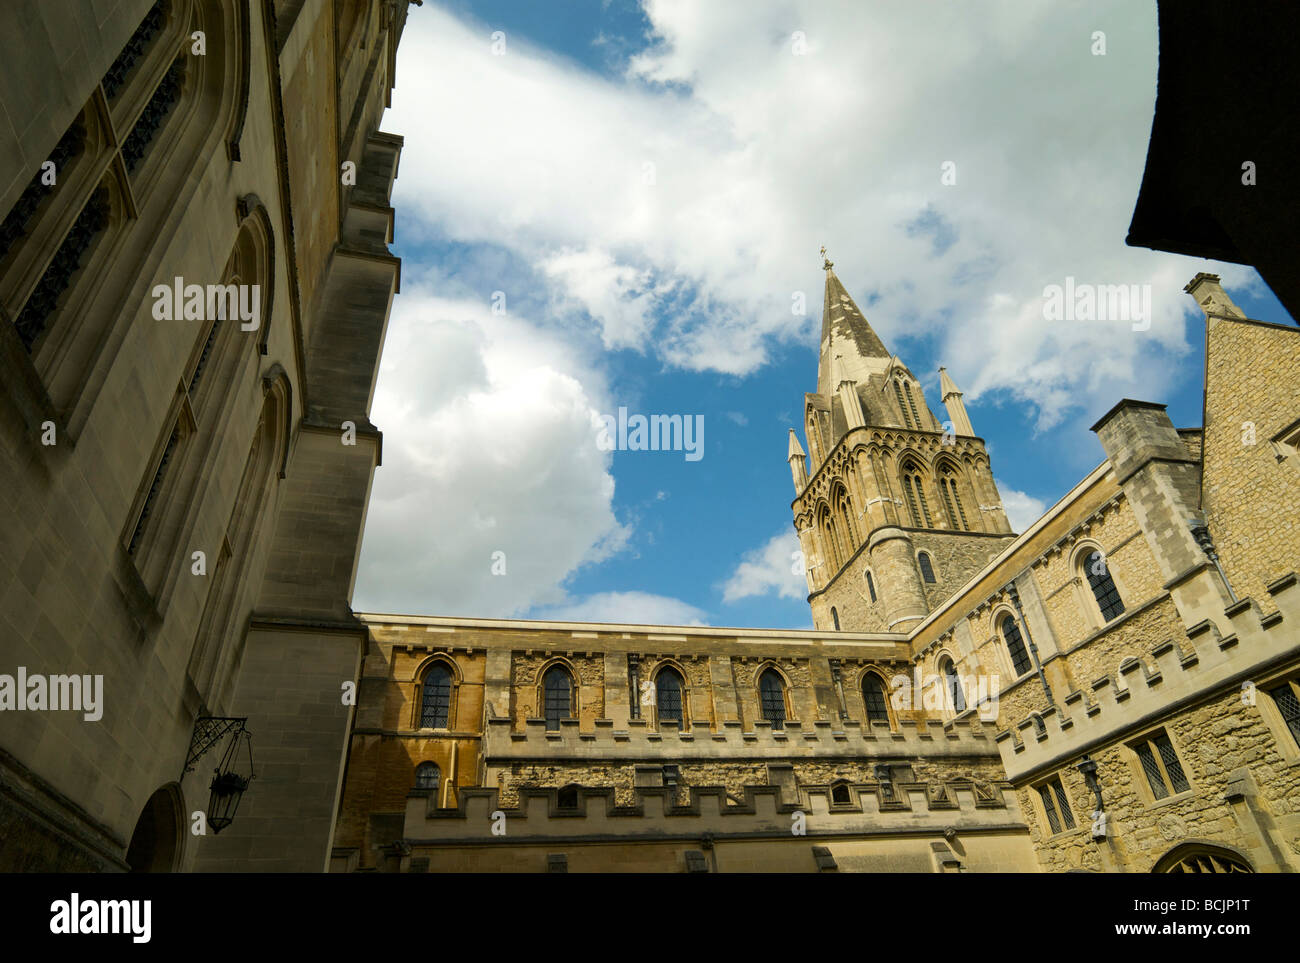 The cloister at Christ Church college Oxford looking towards the Cathedral spire - Stock Image